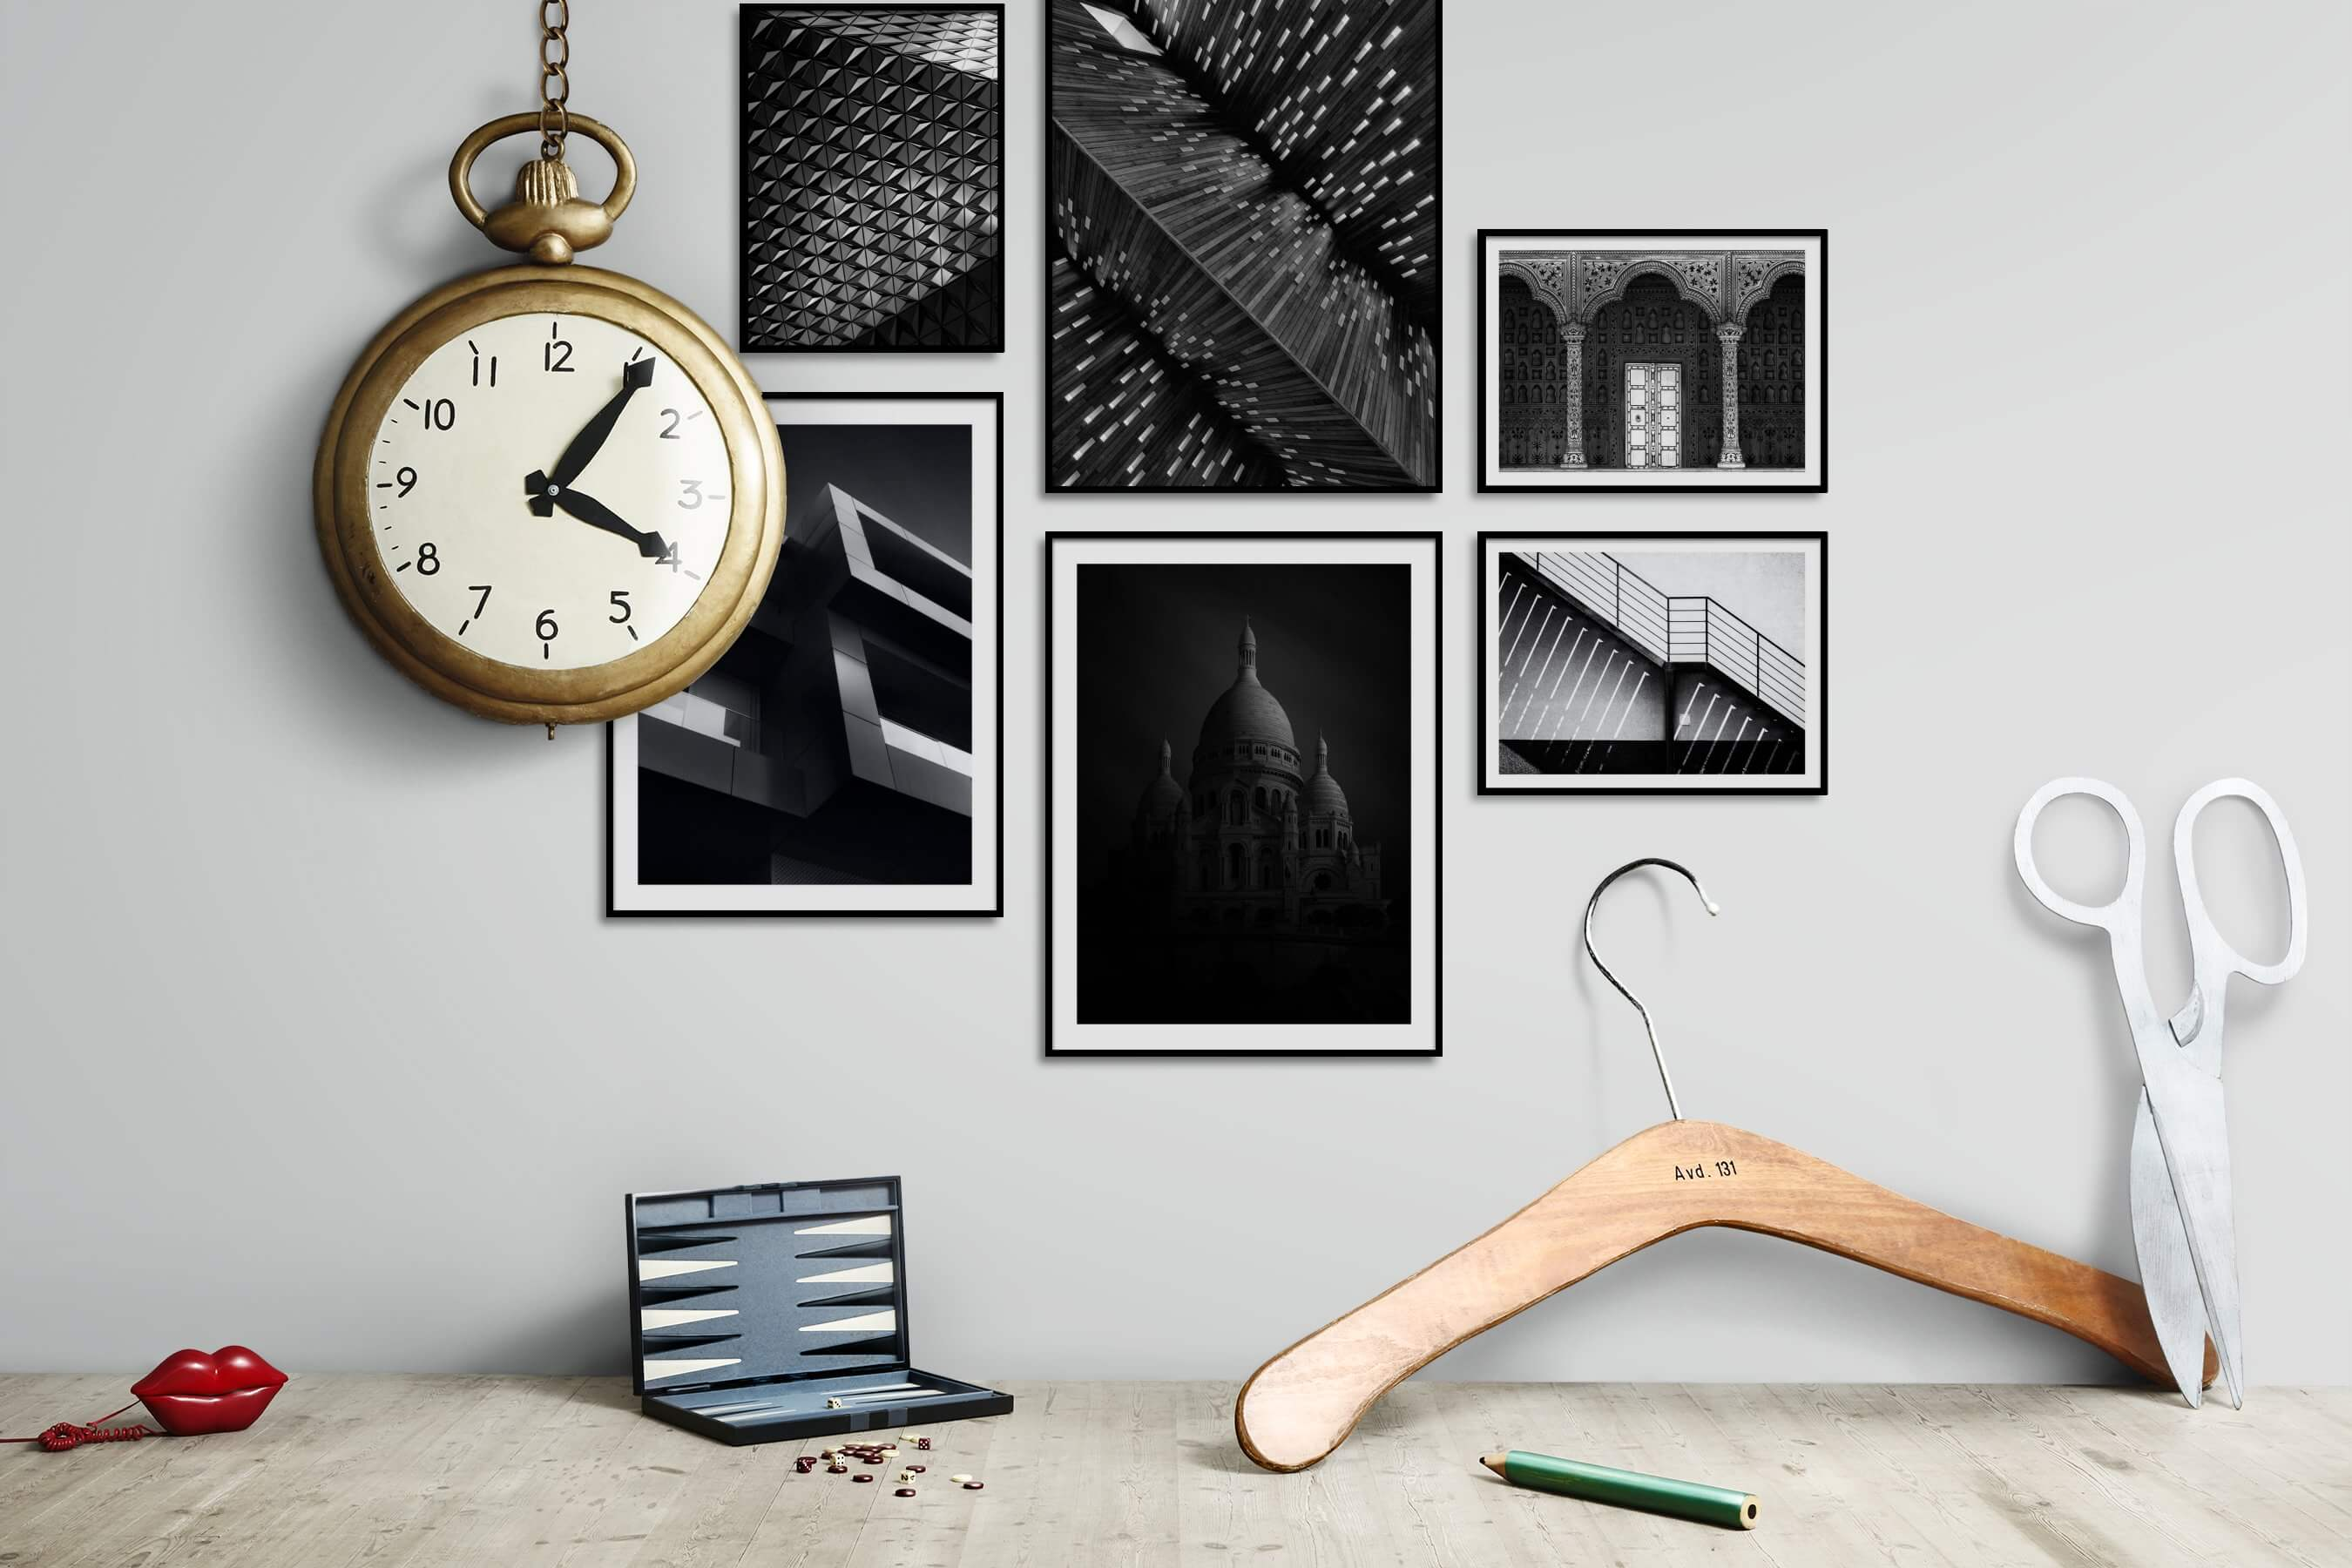 Gallery wall idea with six framed pictures arranged on a wall depicting Black & White, For the Maximalist, For the Moderate, City Life, and For the Minimalist